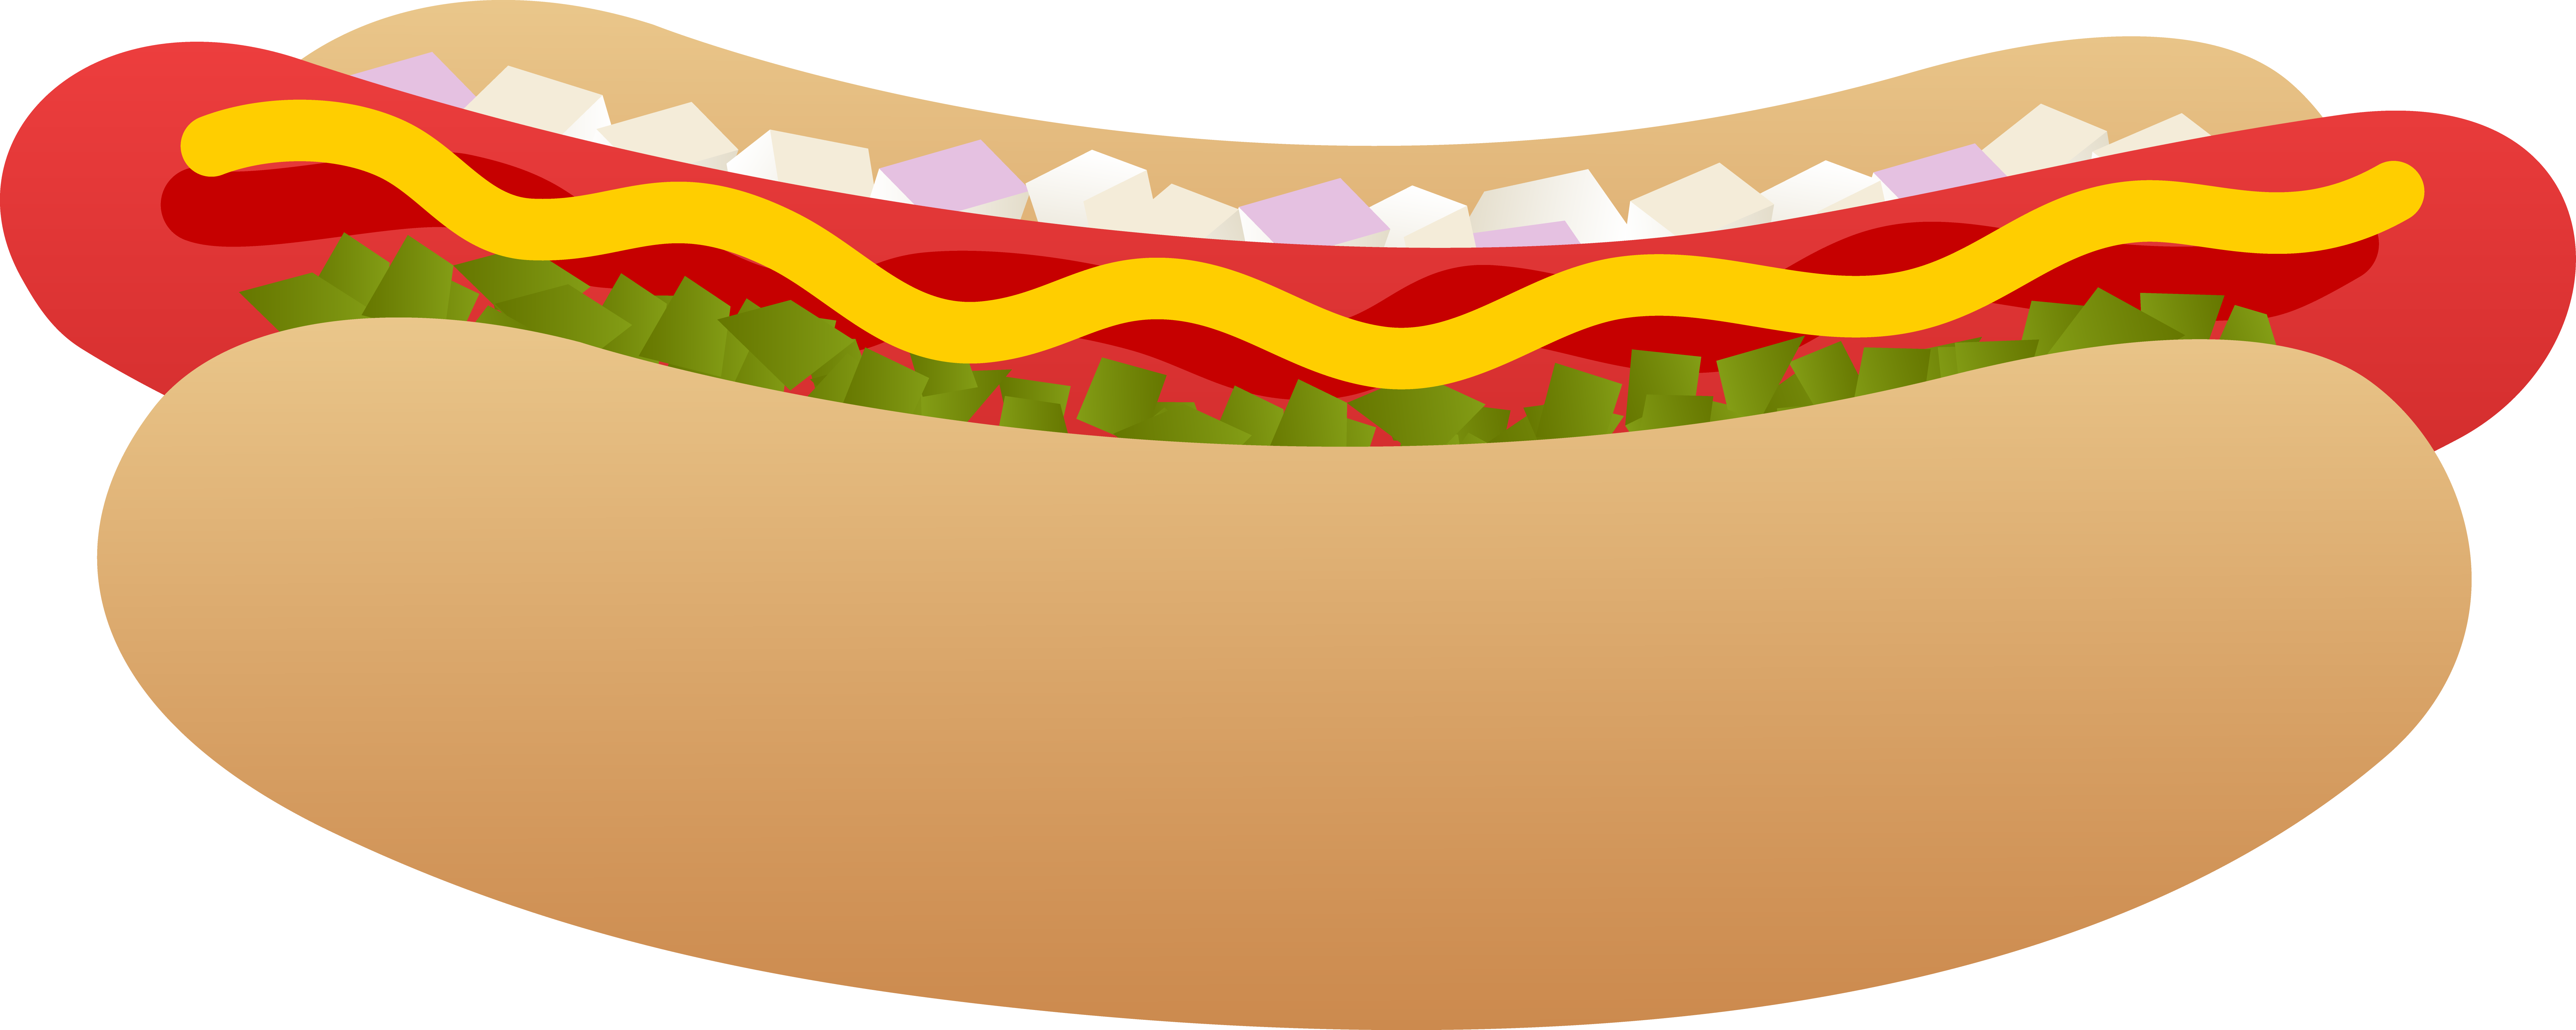 Roasting hot dog clipart clipart transparent Hot Dog Pranks – Just for Laughs Gags … | Bear Tales clipart transparent